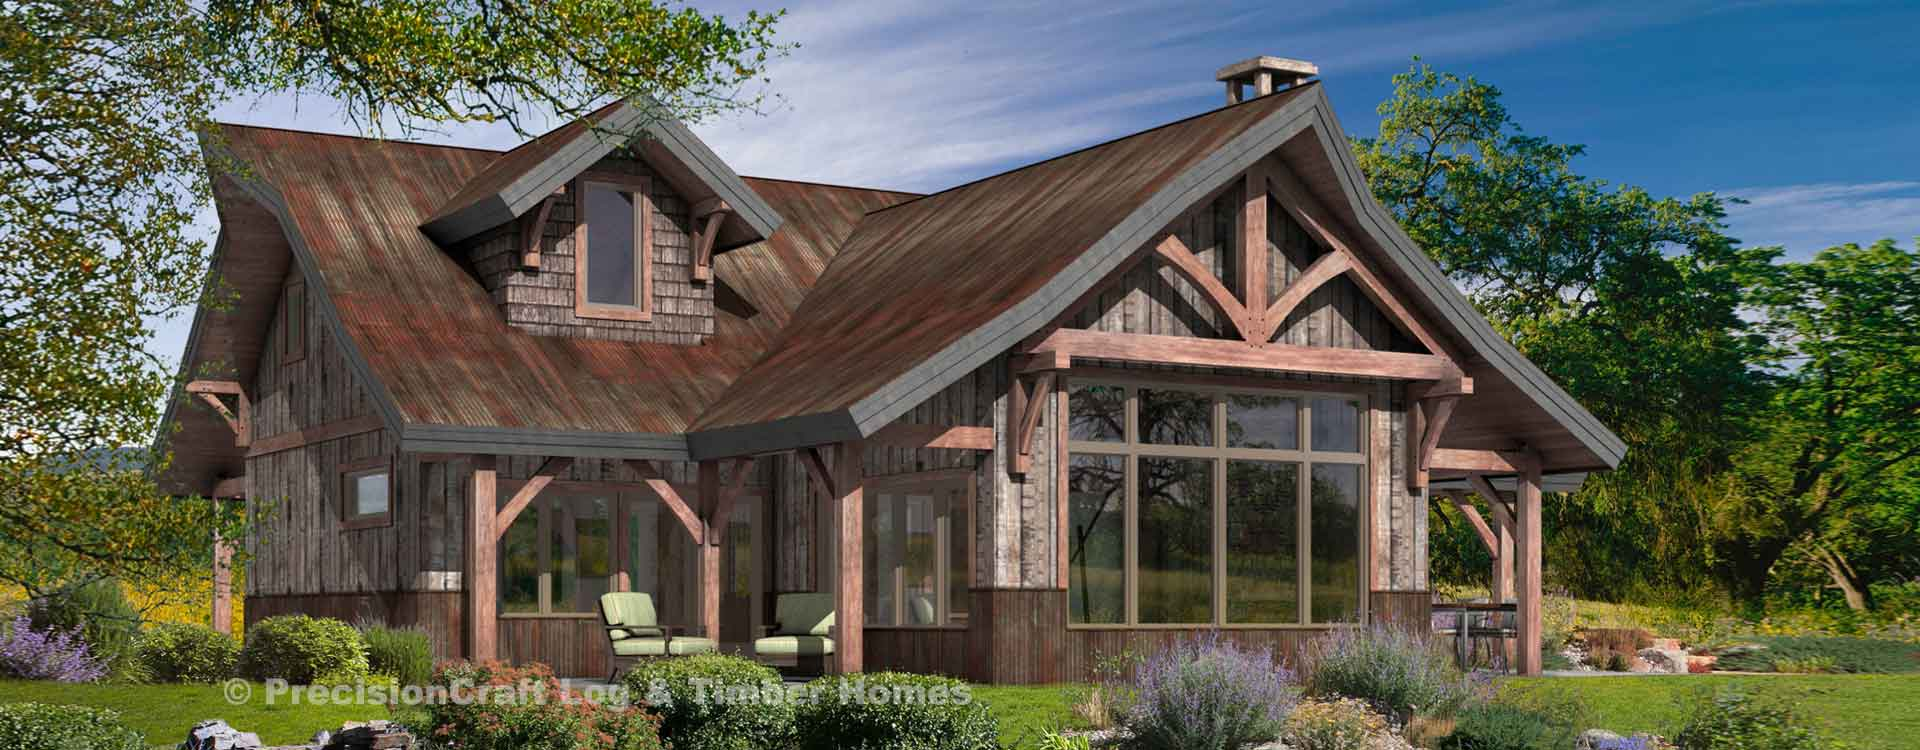 ashcroft timber frame floor plan